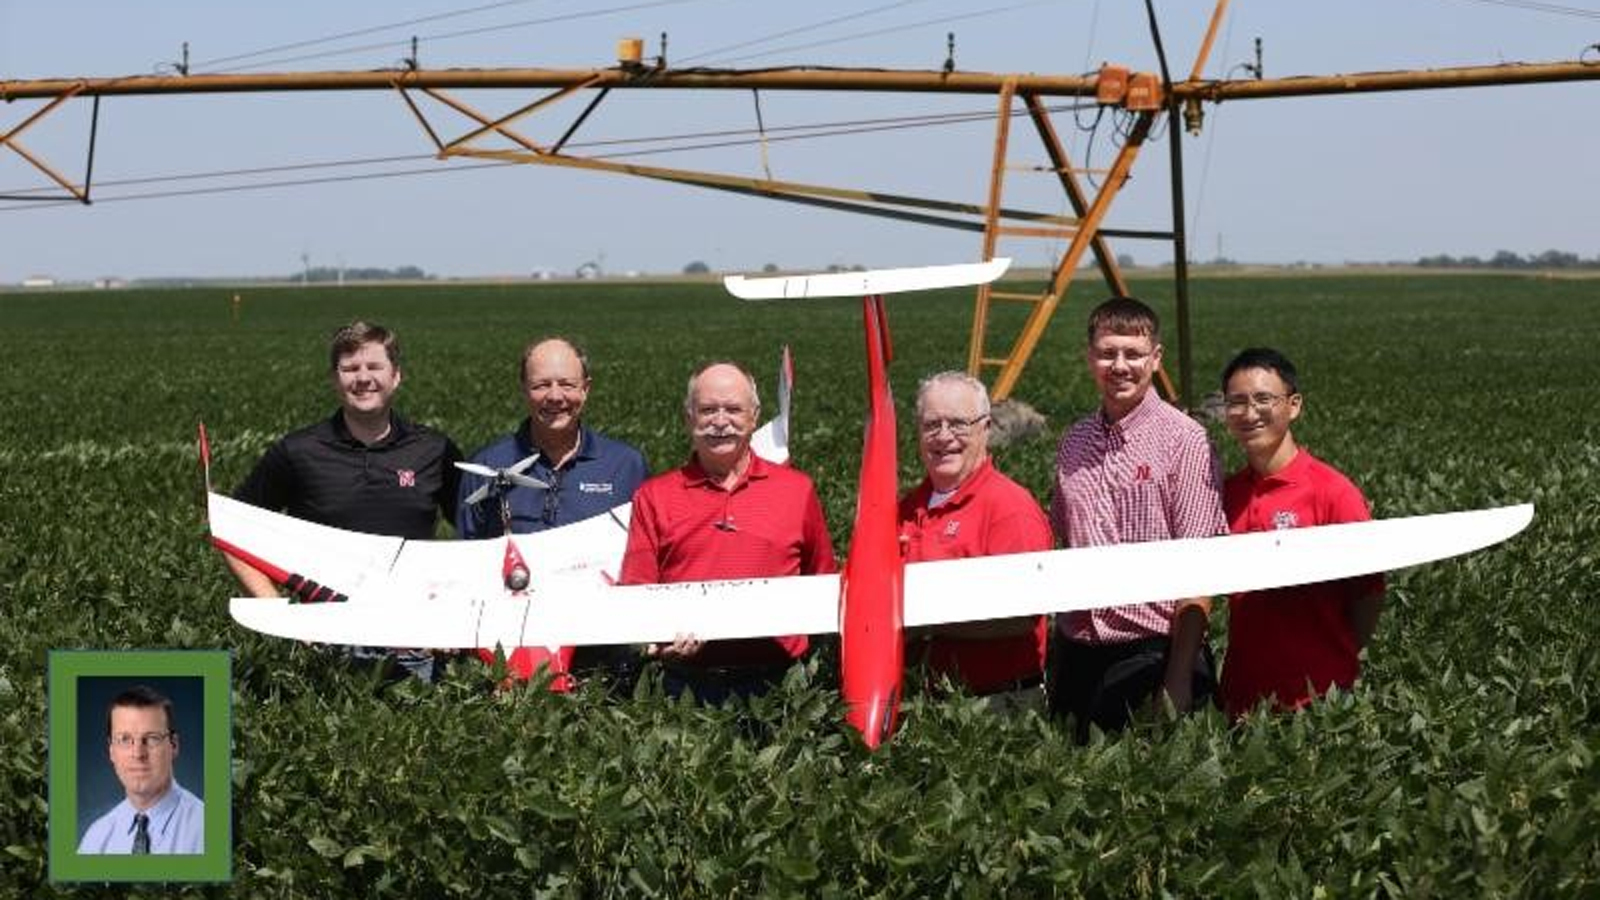 A new research project funded by the United States Department of Agriculture and the Daugherty Water for Food Global Institute at the University of Nebraska seeks to deploy drones in search of improved crop irrigation efficiency. The funding provided by the half million-dollar grant will be used to explore using new aerial robotic technologies to help farmers make informed decisions about managing their complex center pivot irrigation systems.